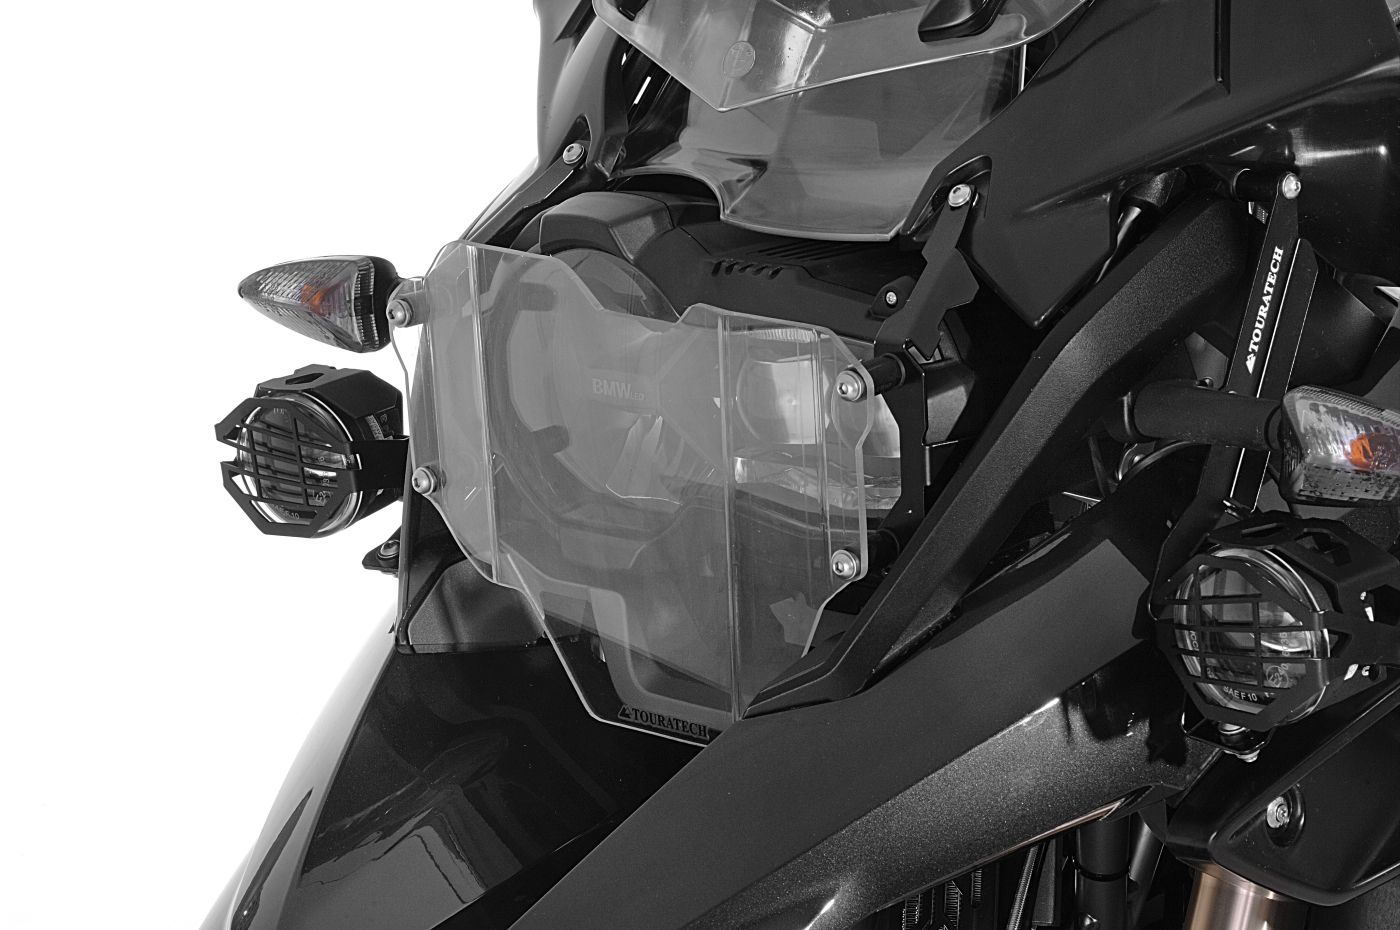 Fits R1200GS LC Adventure New Headlight Protector With Quick Release Fastener